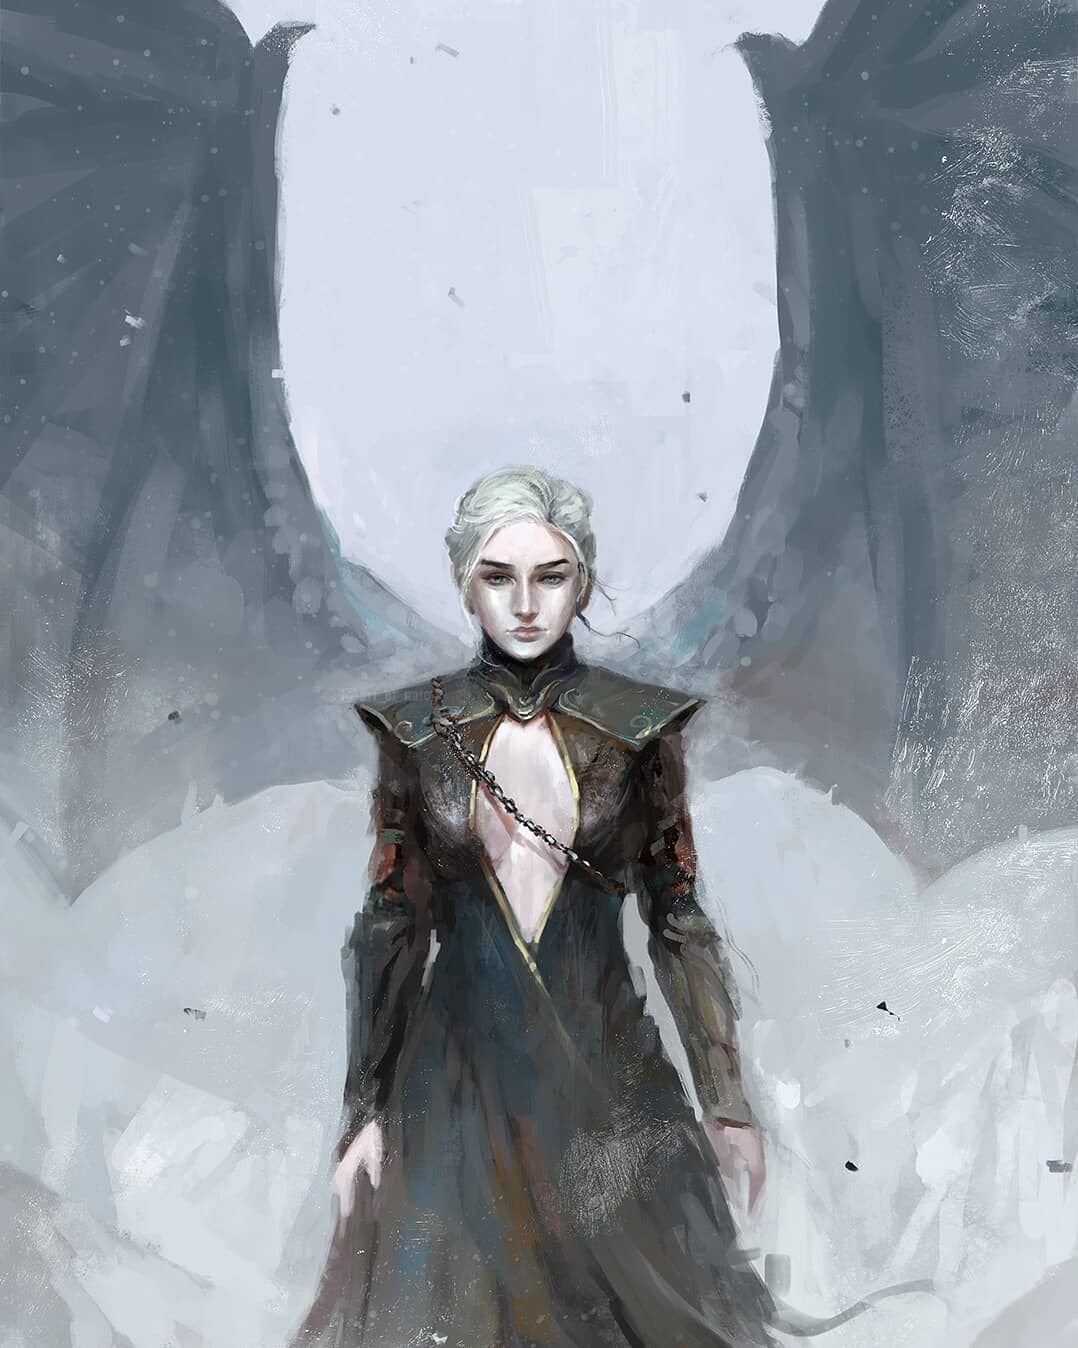 Game Of Thrones Fanart On Instagram Queen Of The Ashes By Art Of Nate Gameofthrones Daener Targaryen Art Daenerys Targaryen Art Game Of Thrones Art